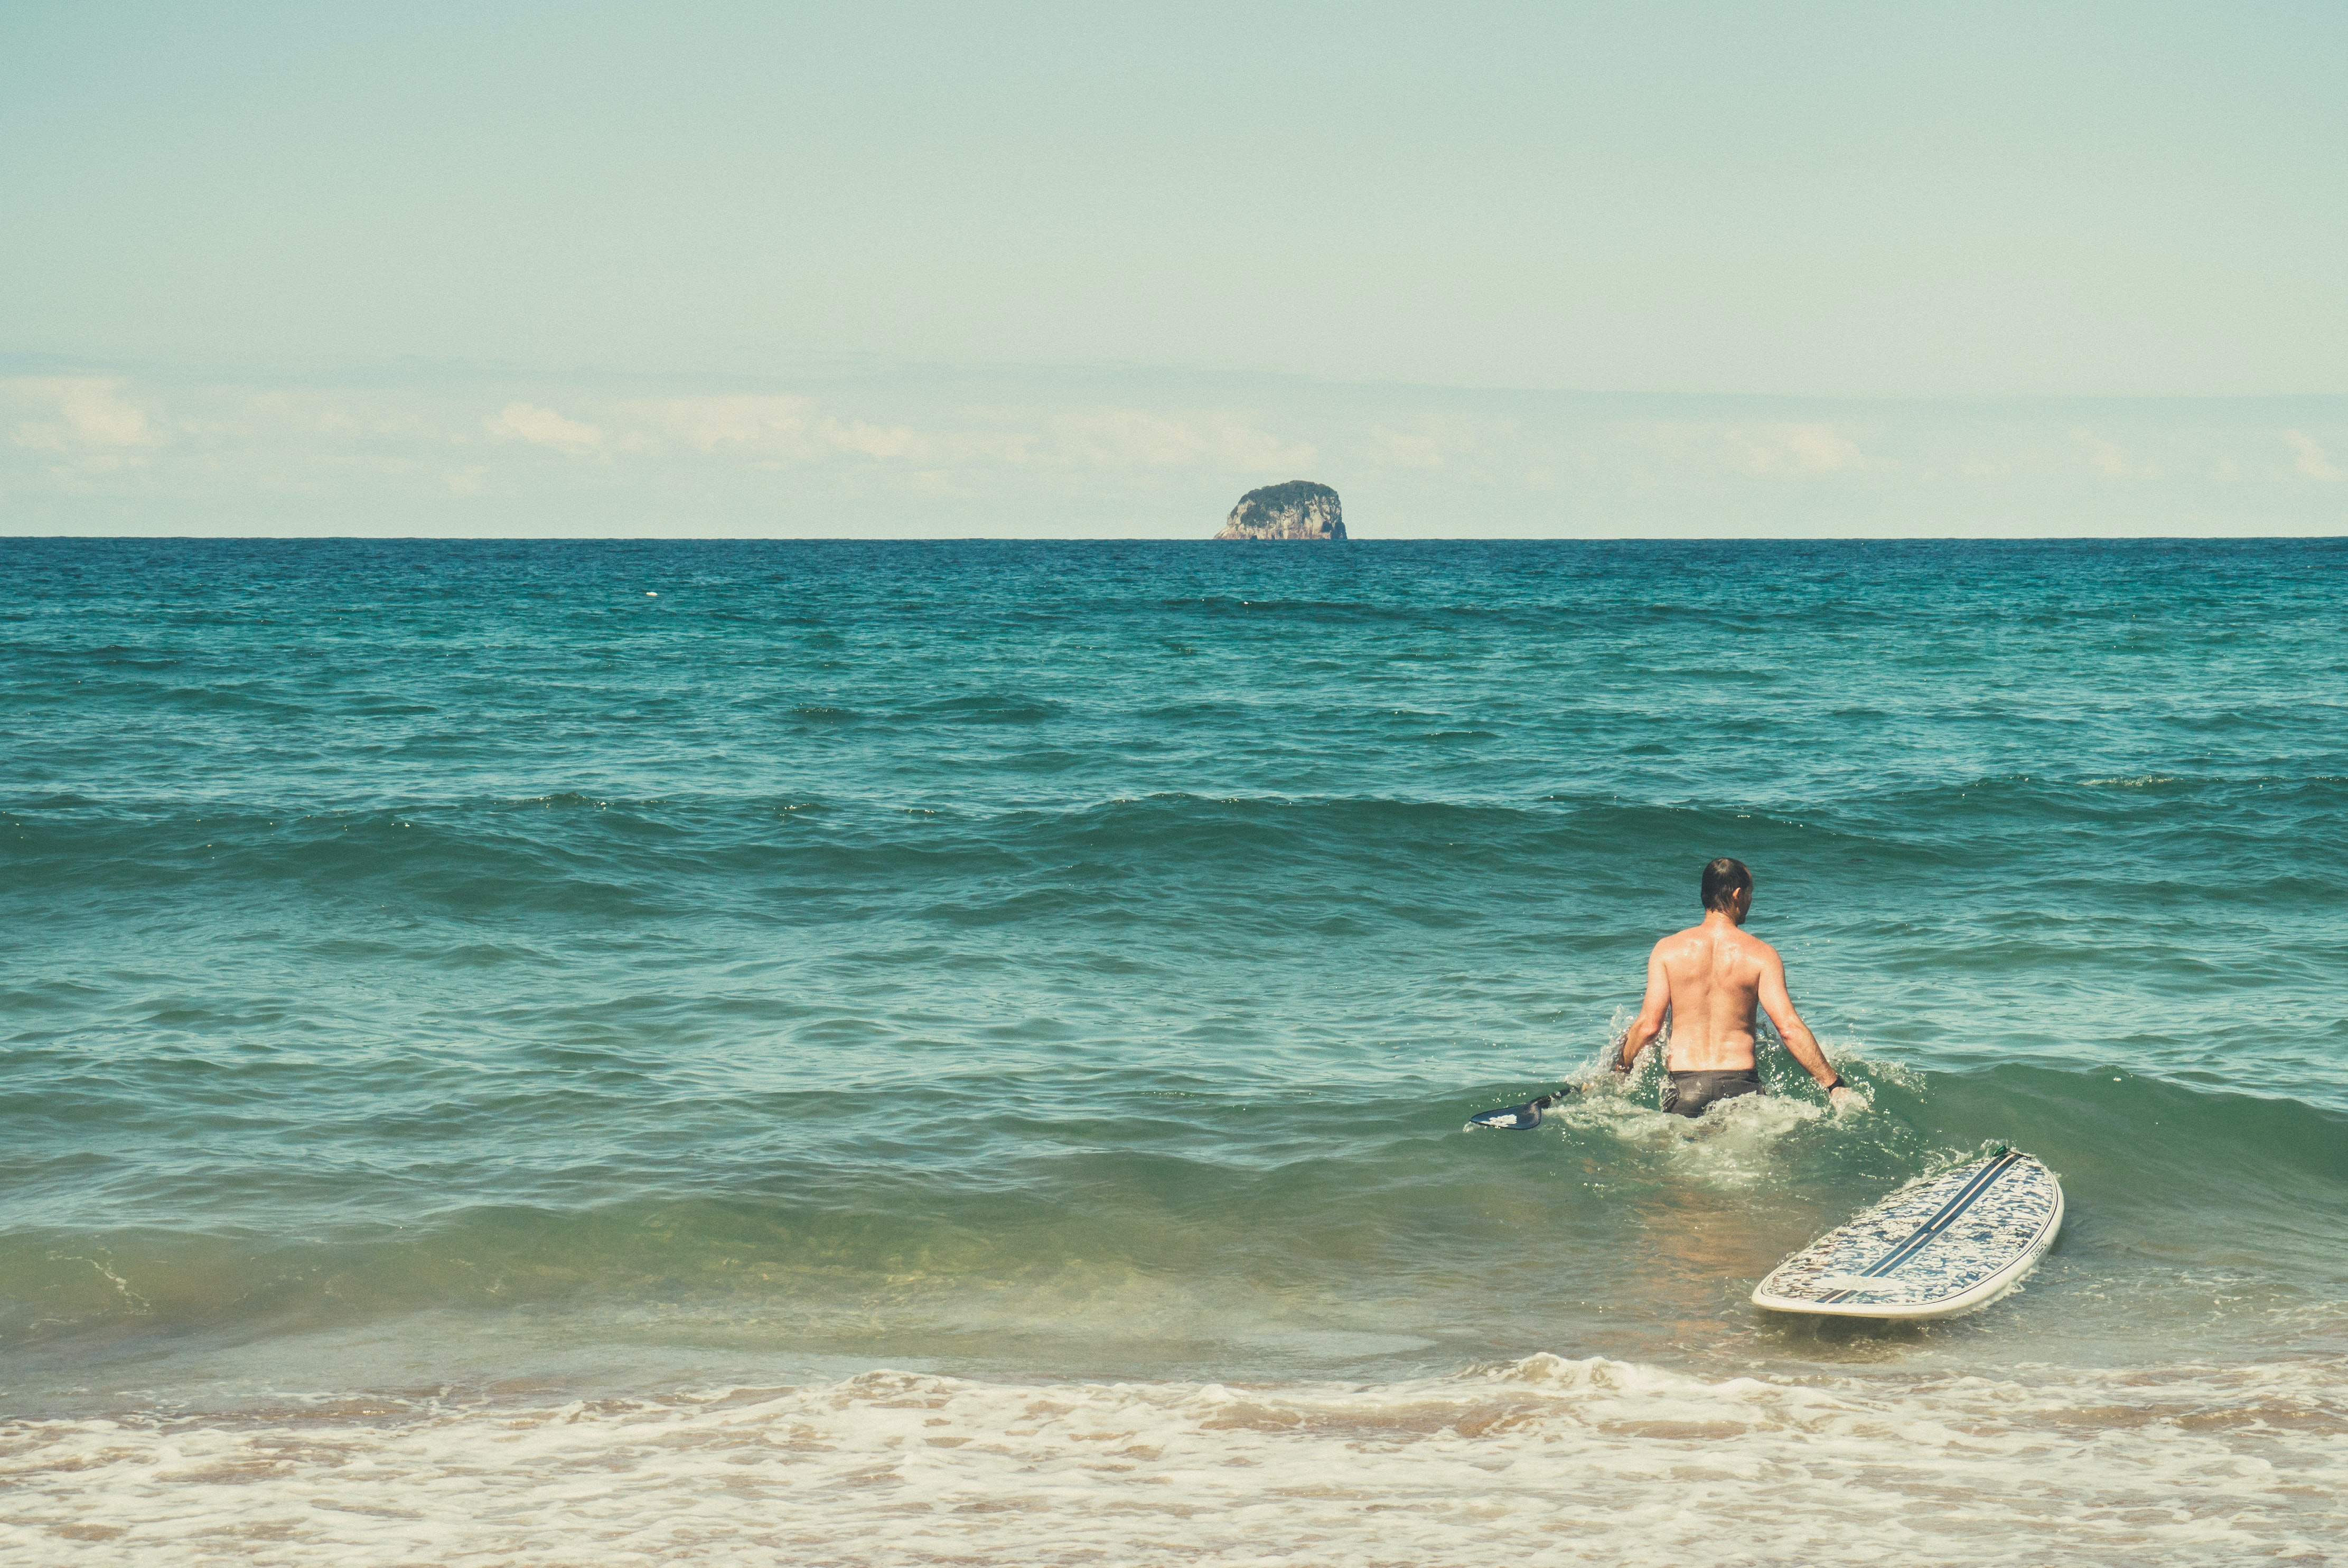 Surfer with a surfboard entering the calm ocean